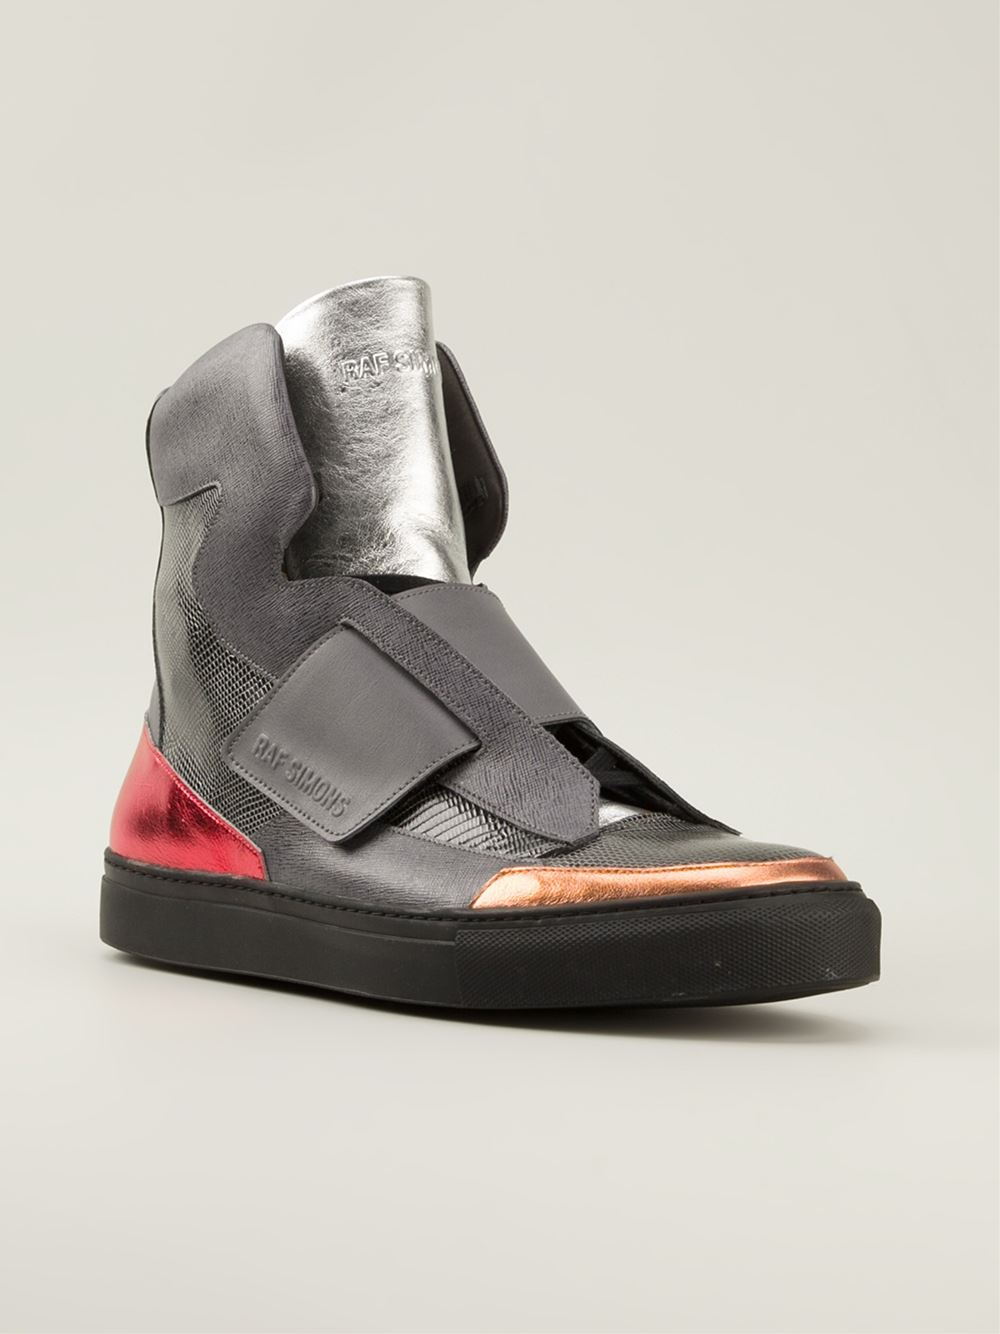 raf simons mens high top strapped sneaker in gray lyst. Black Bedroom Furniture Sets. Home Design Ideas